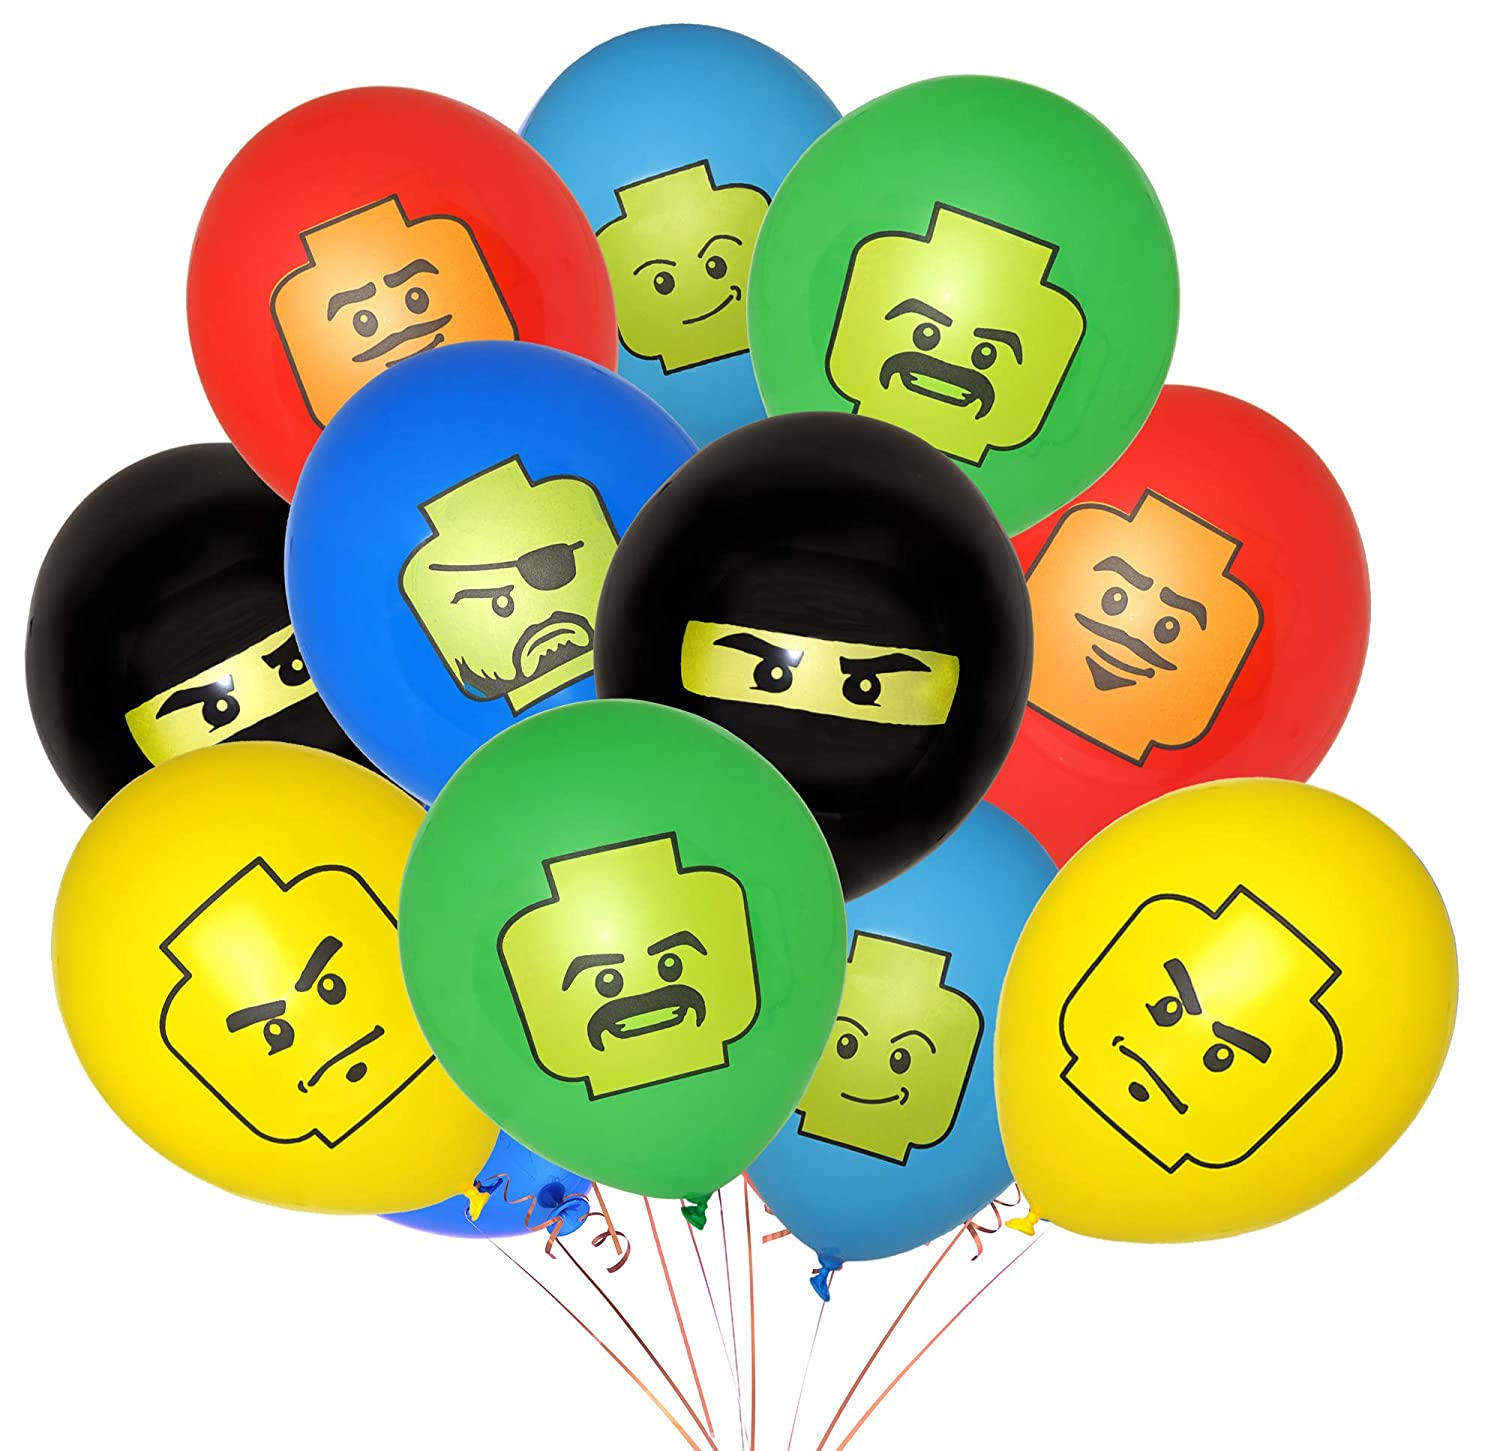 Giant Set of Double-Sided Brick-Theme Birthday Balloons (24-Pack) - 2019 Edition - 12-Inch Party Balloons - Birthday Party Supplies Great for Themed ...